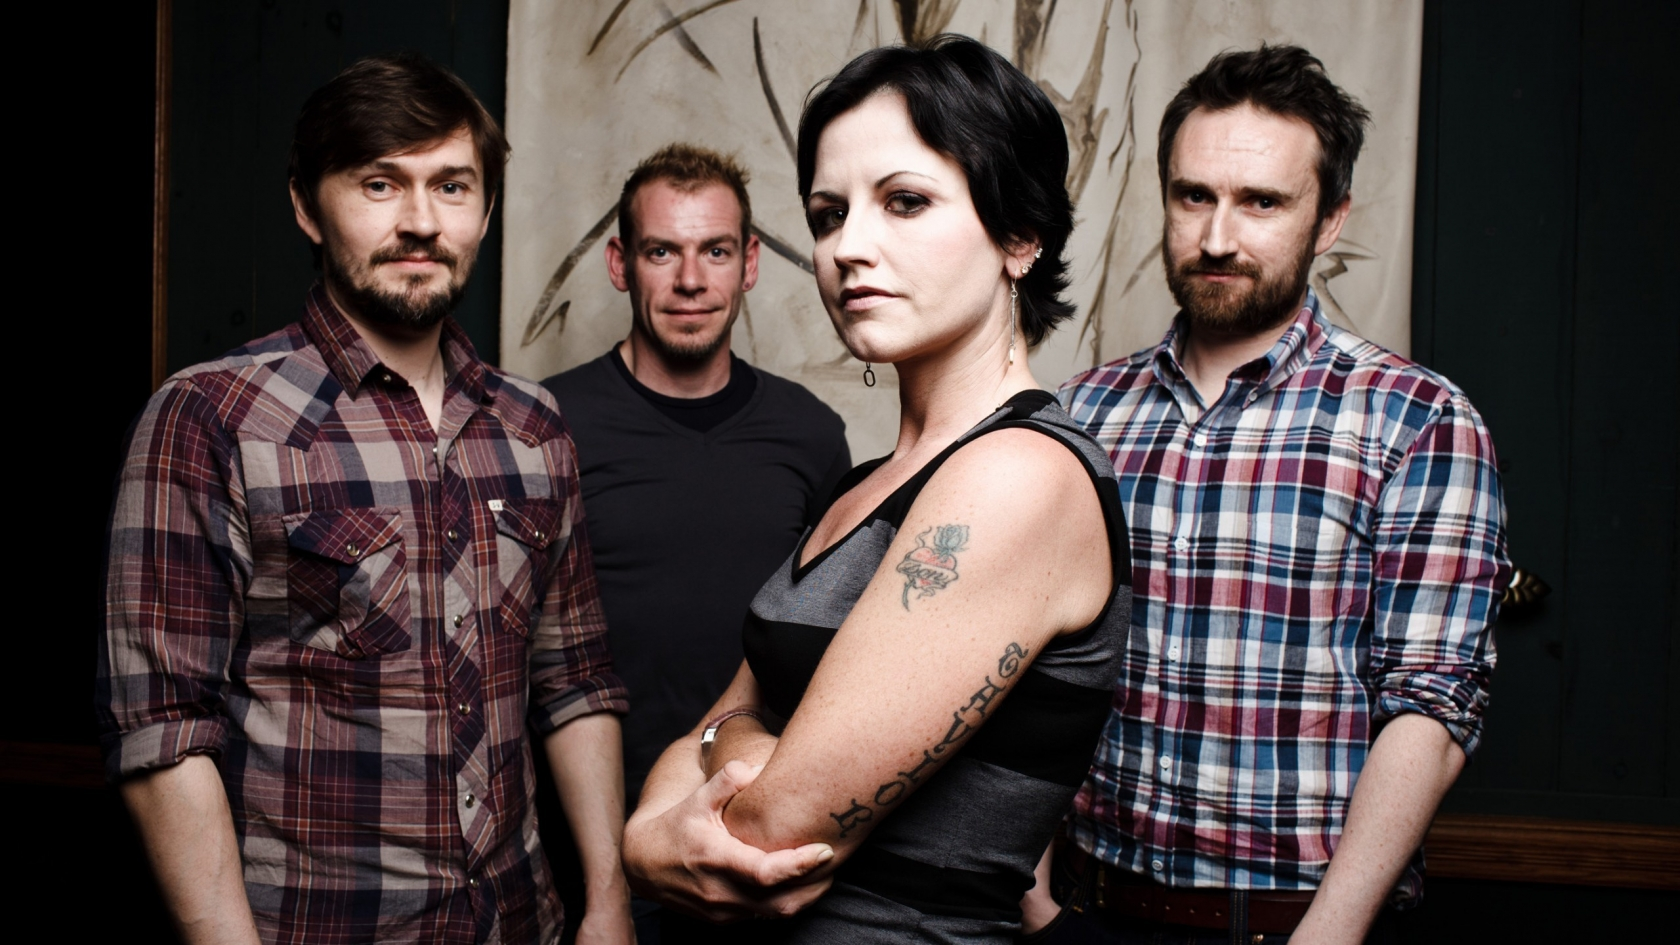 The Cranberries for 1680 x 945 HDTV resolution